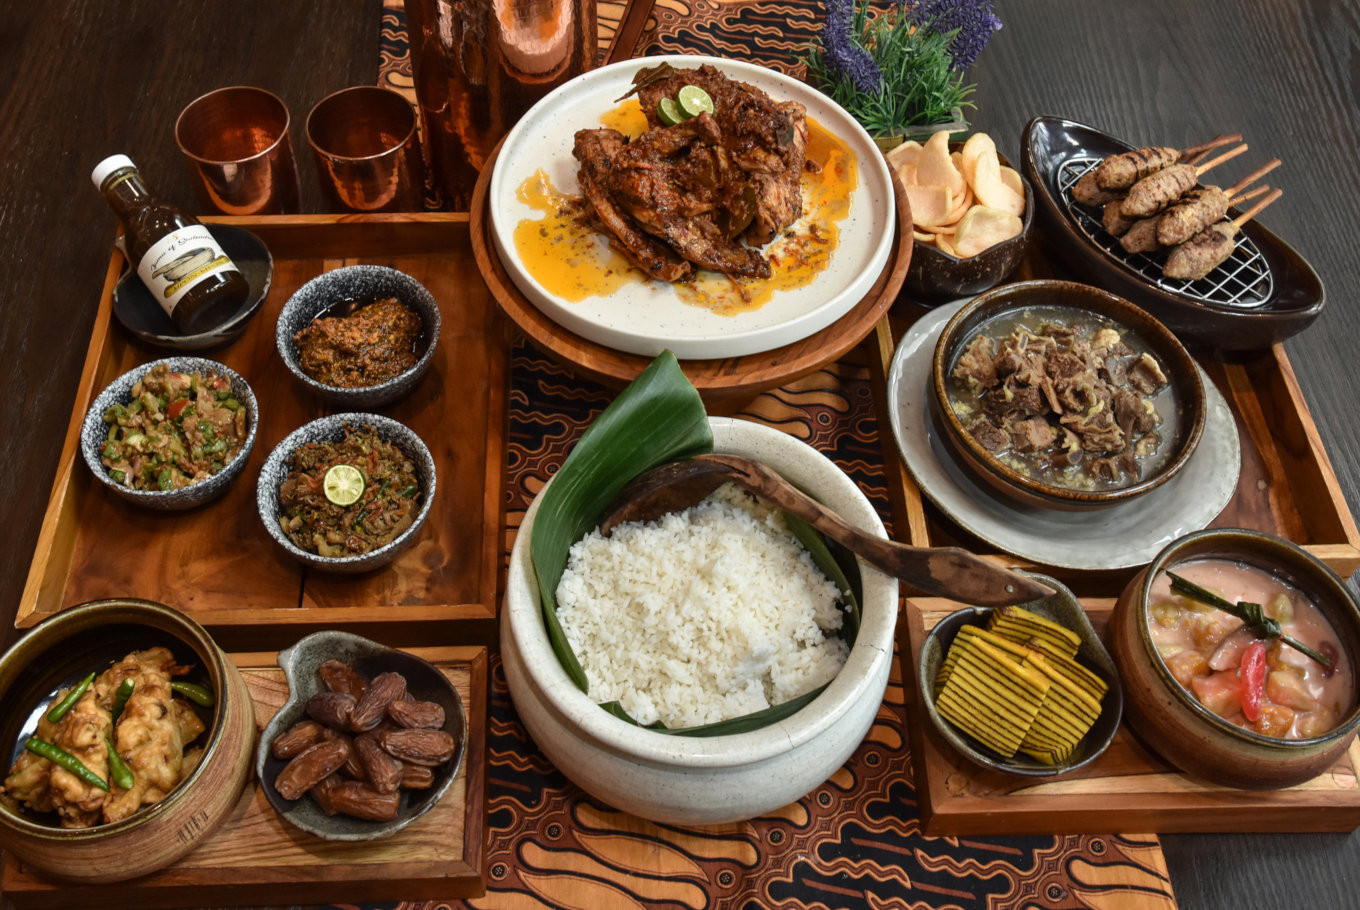 [UPDATED] Jakarta hotels gear up for Ramadan with stay experience, delivery service